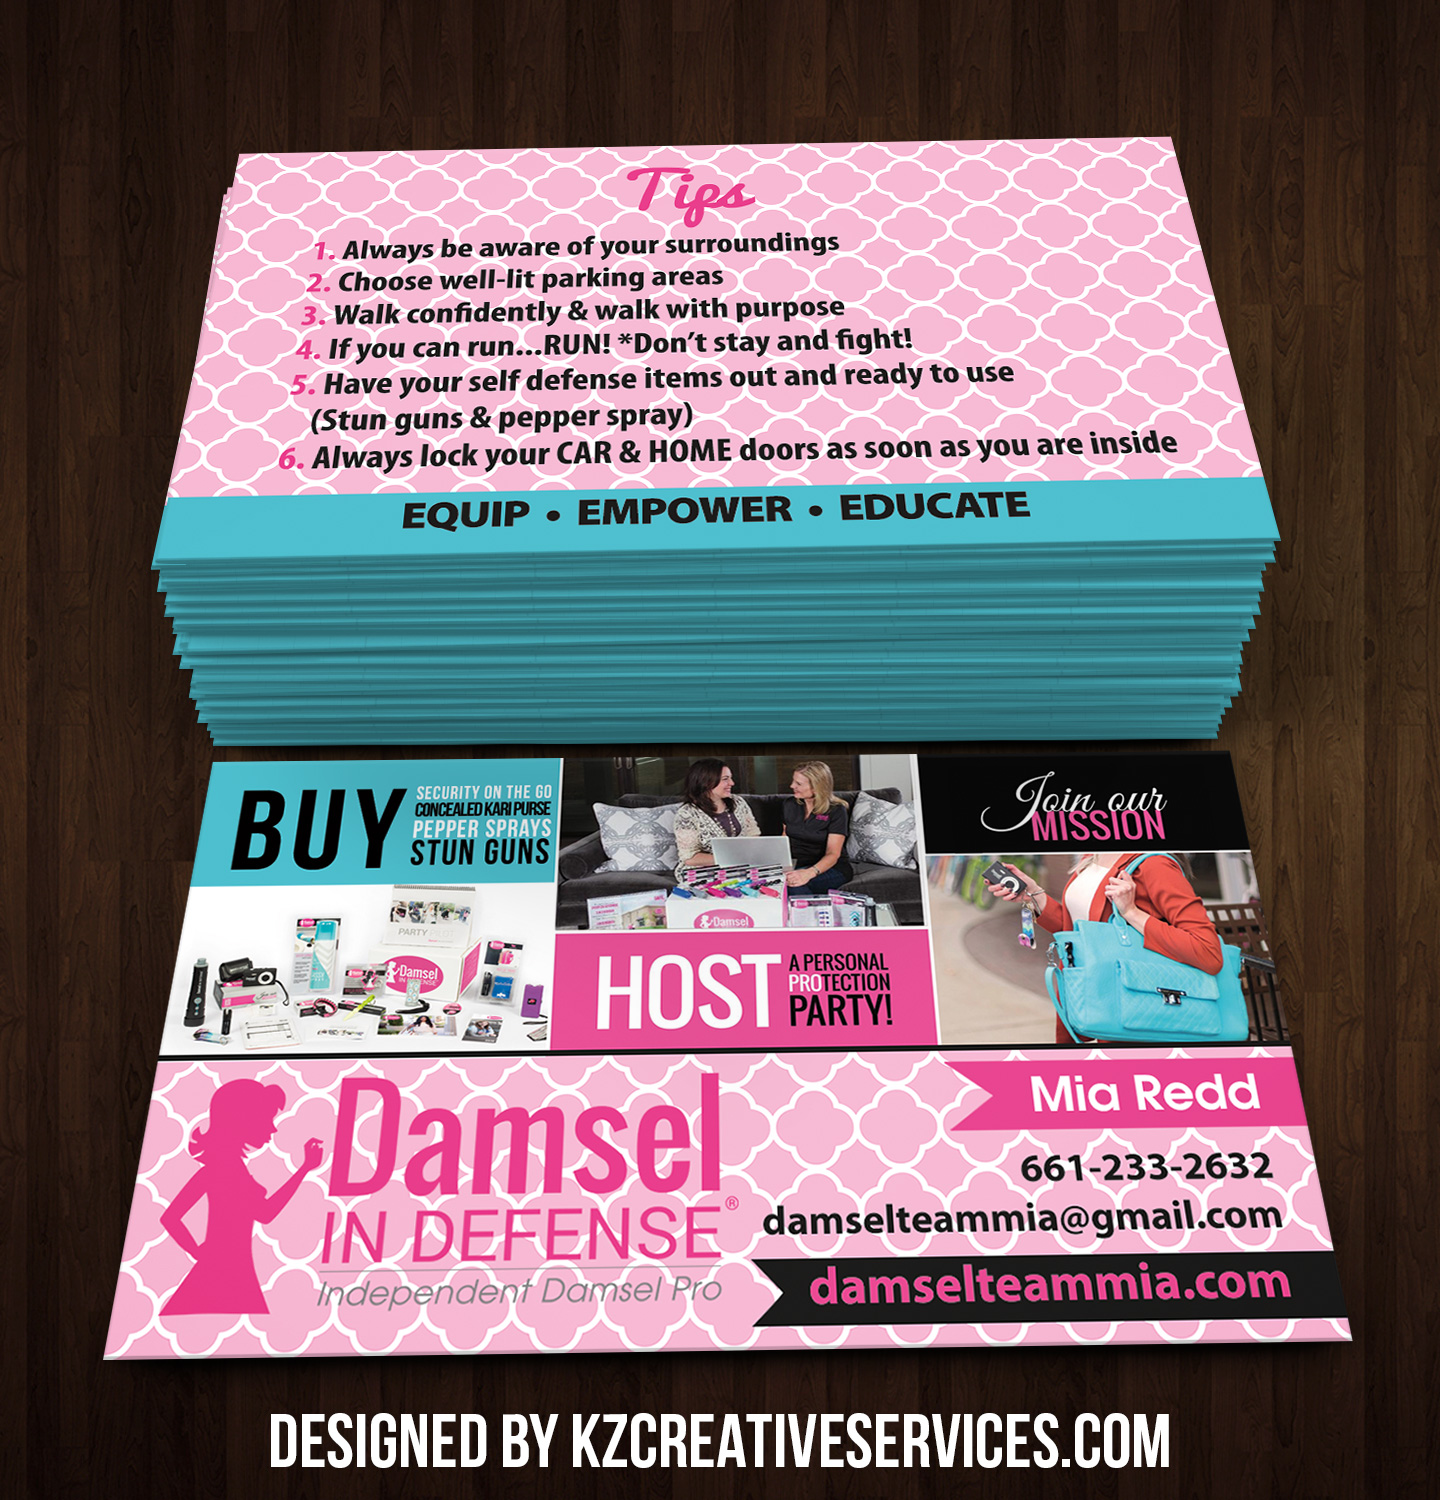 Damsel in Defense Business Cards style 1 · KZ Creative